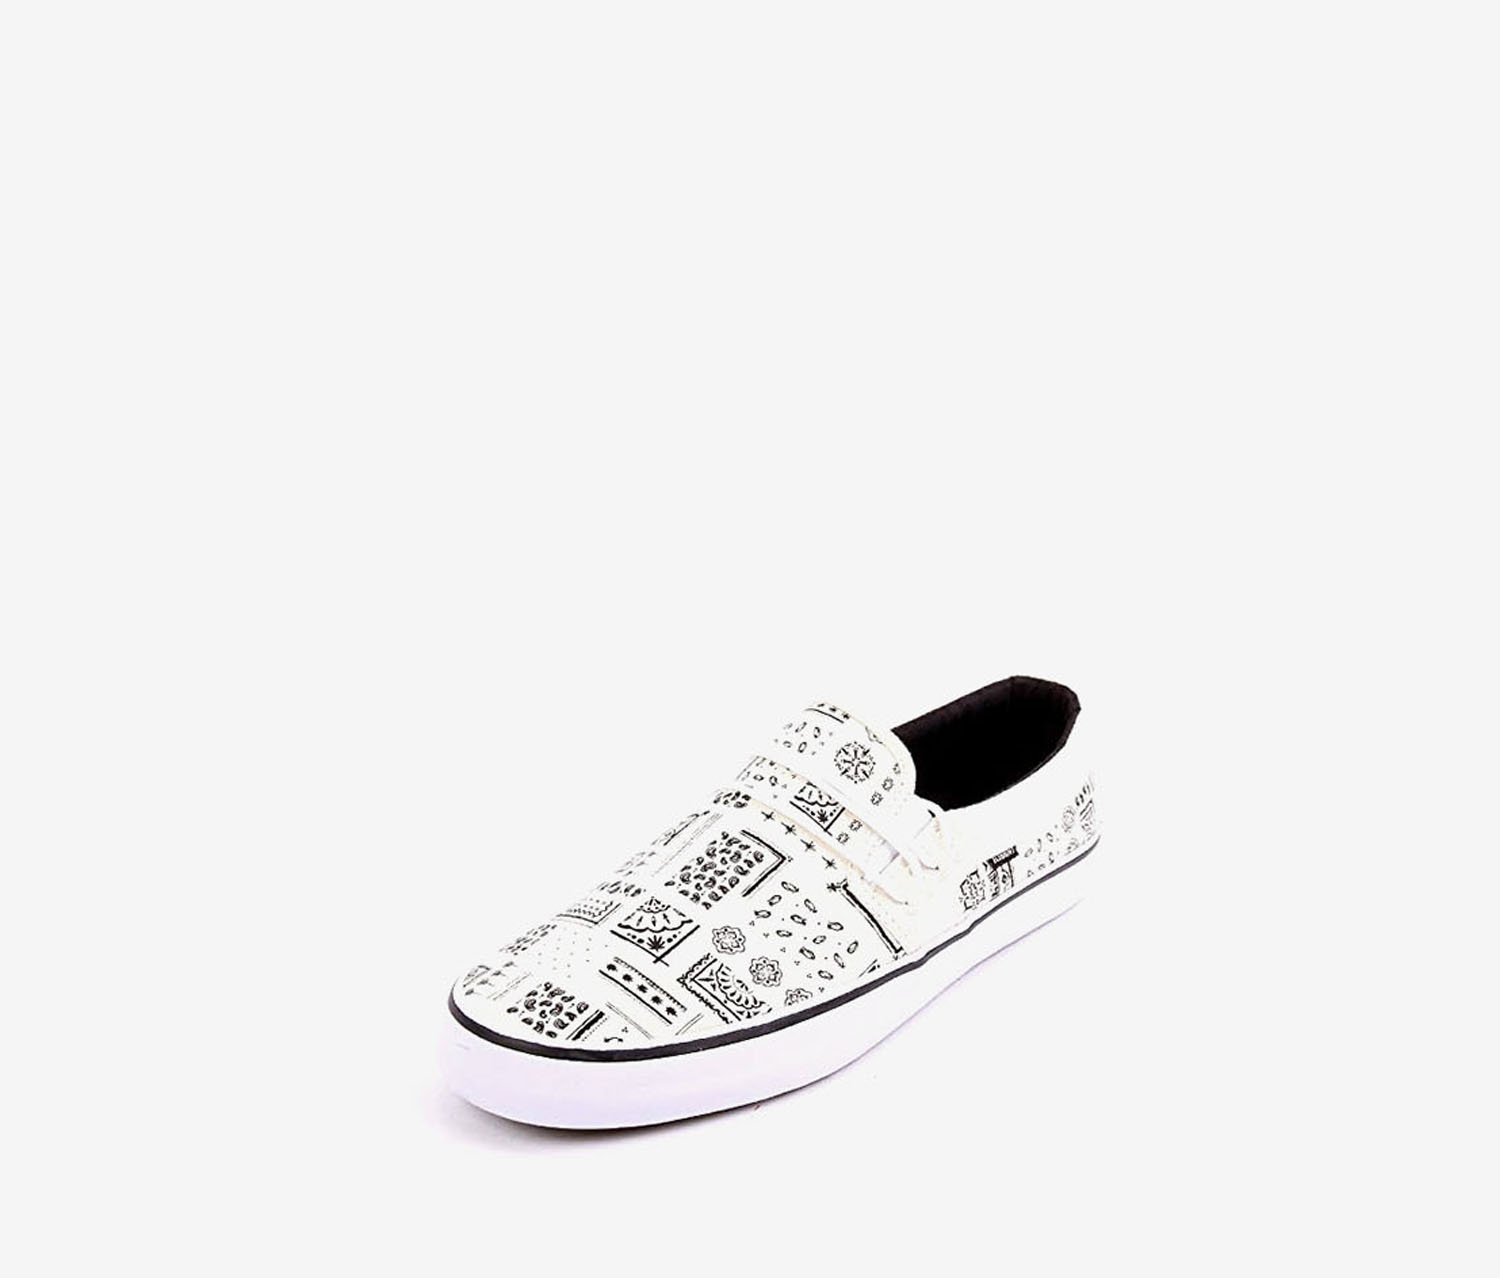 Element Men's Shoes, Off White/Black